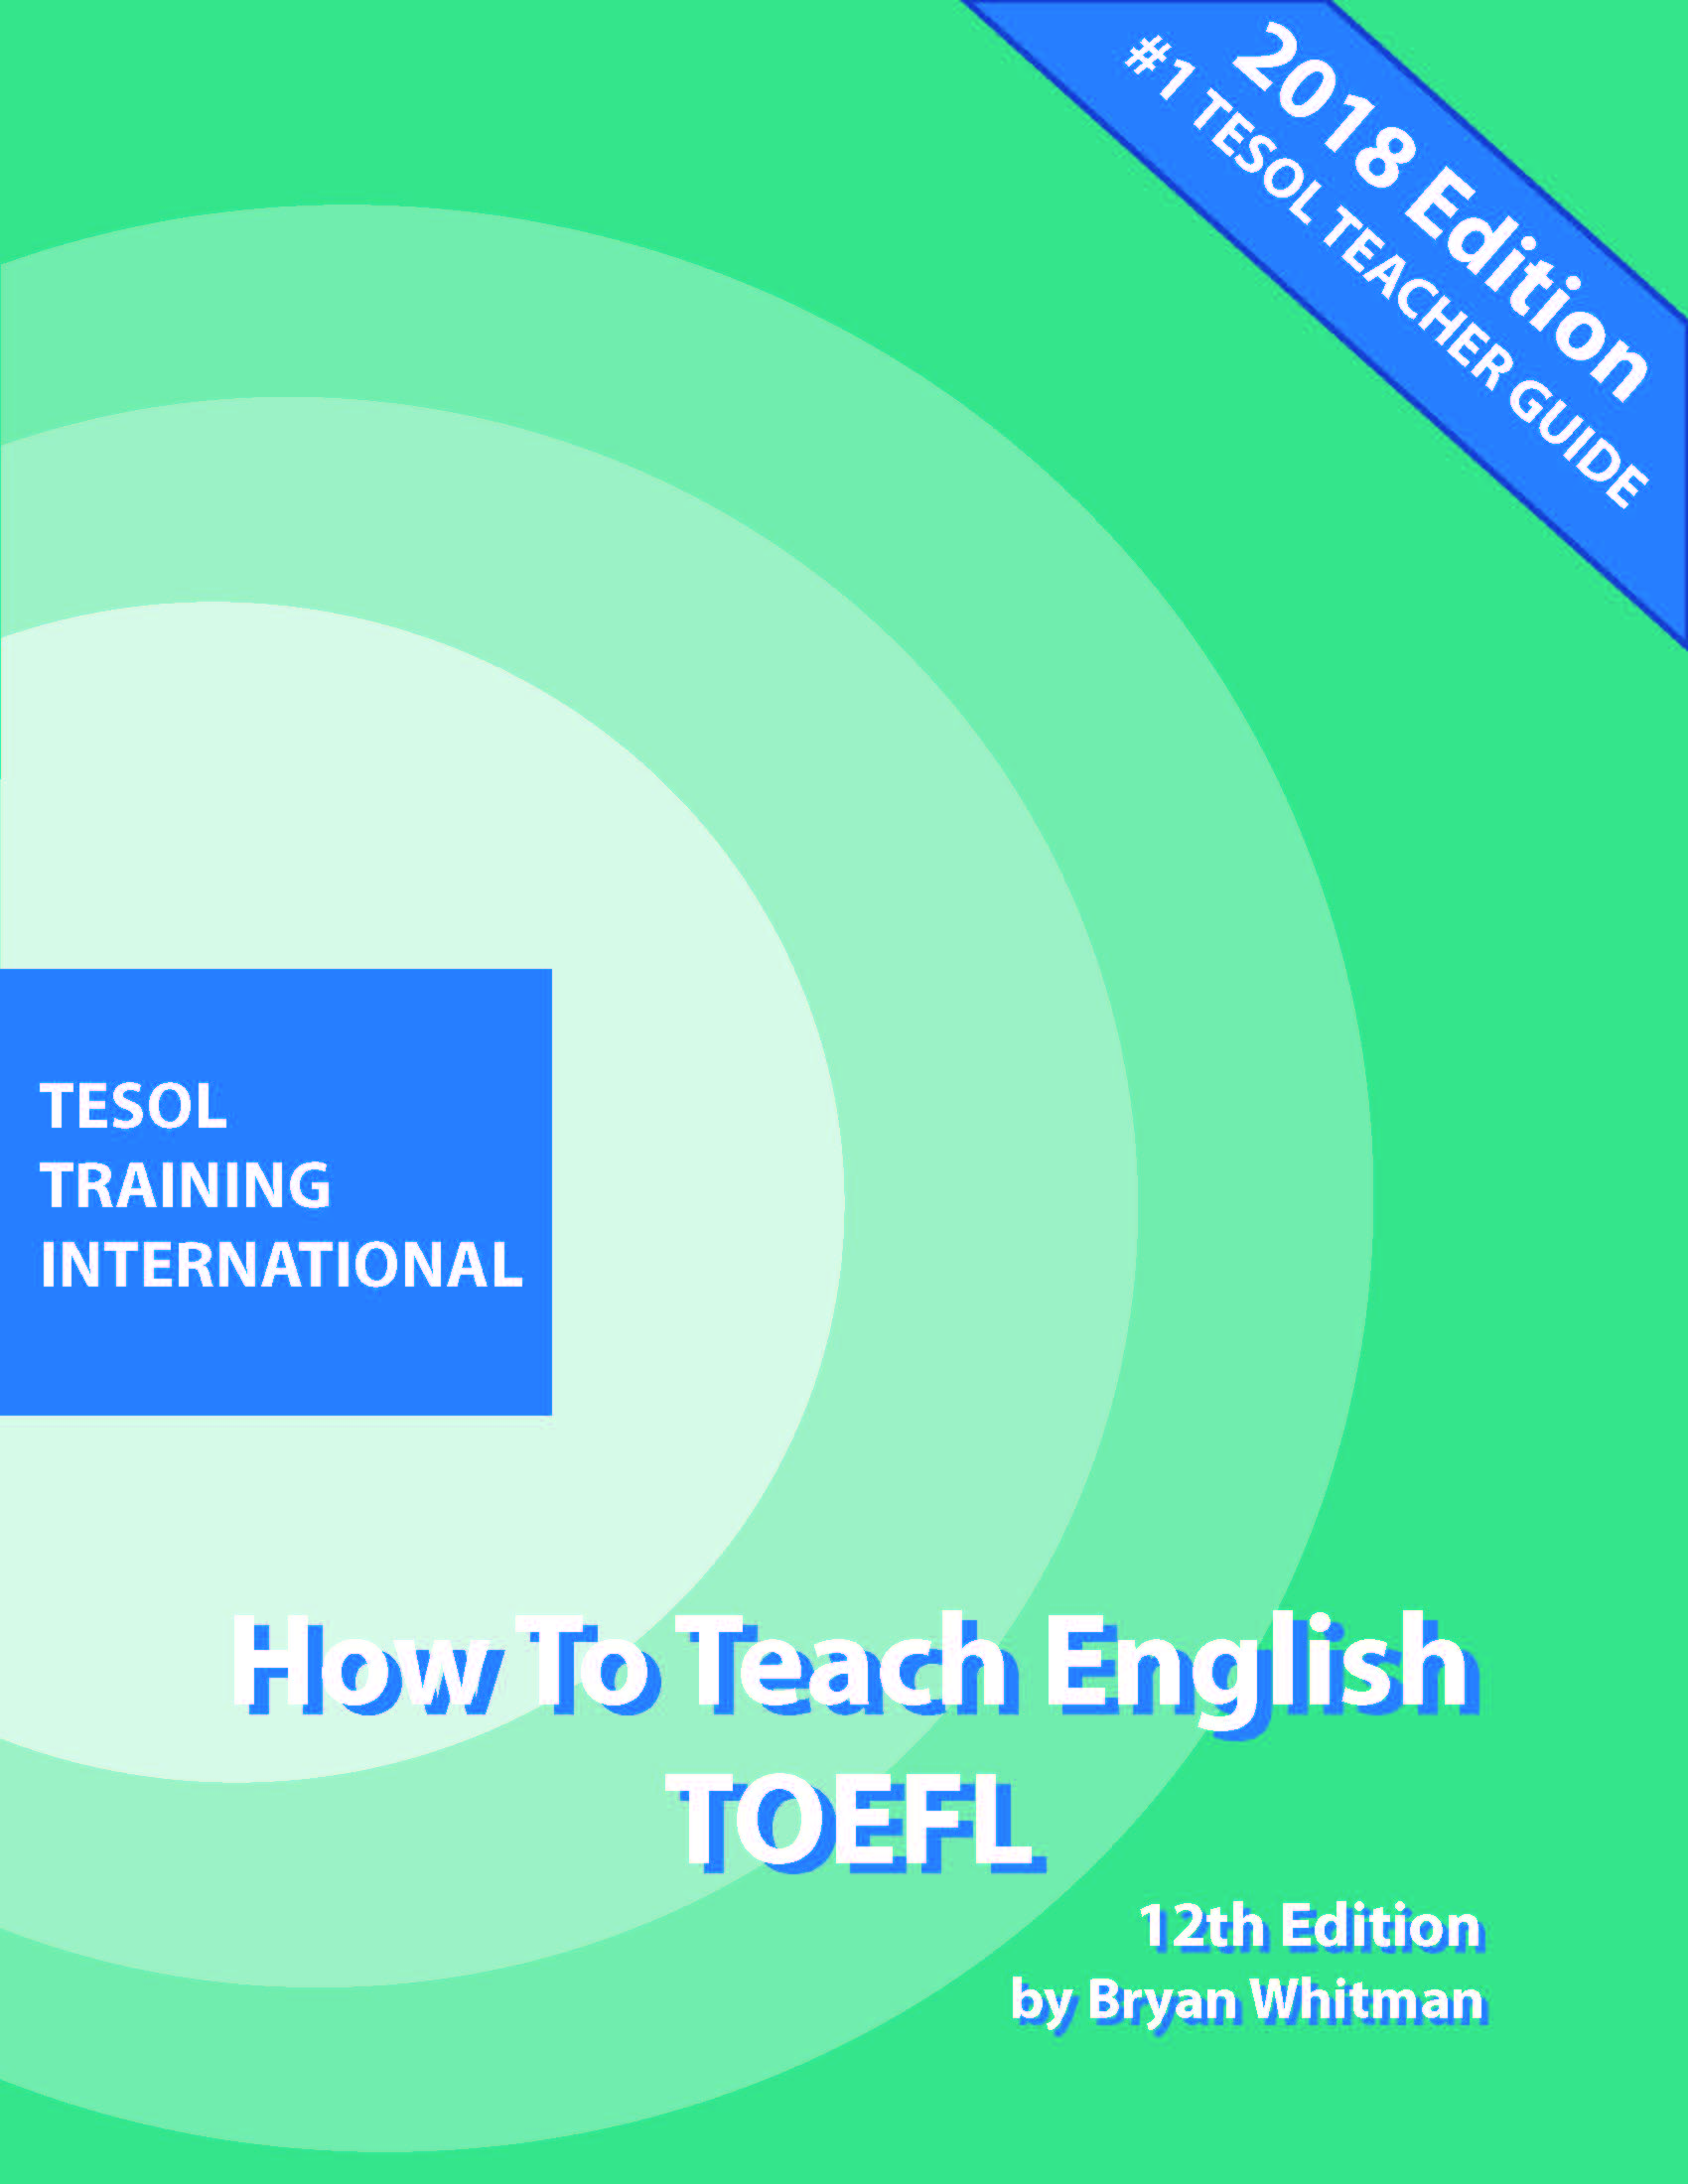 Teaching TOEFL (Test of English as a Foreign Language)